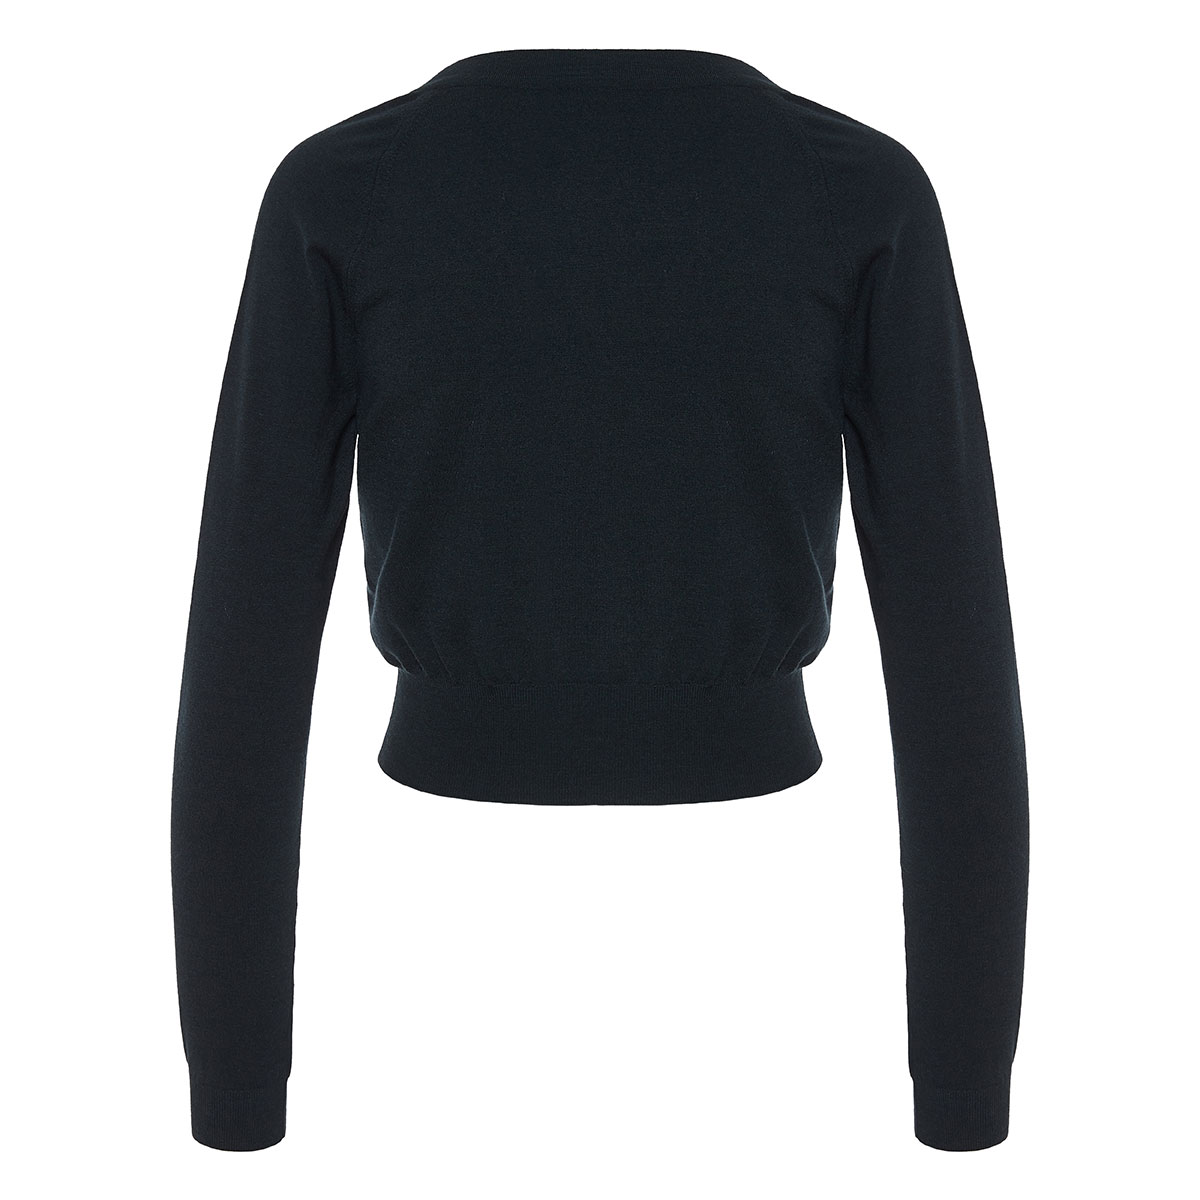 Deep V cropped sweater